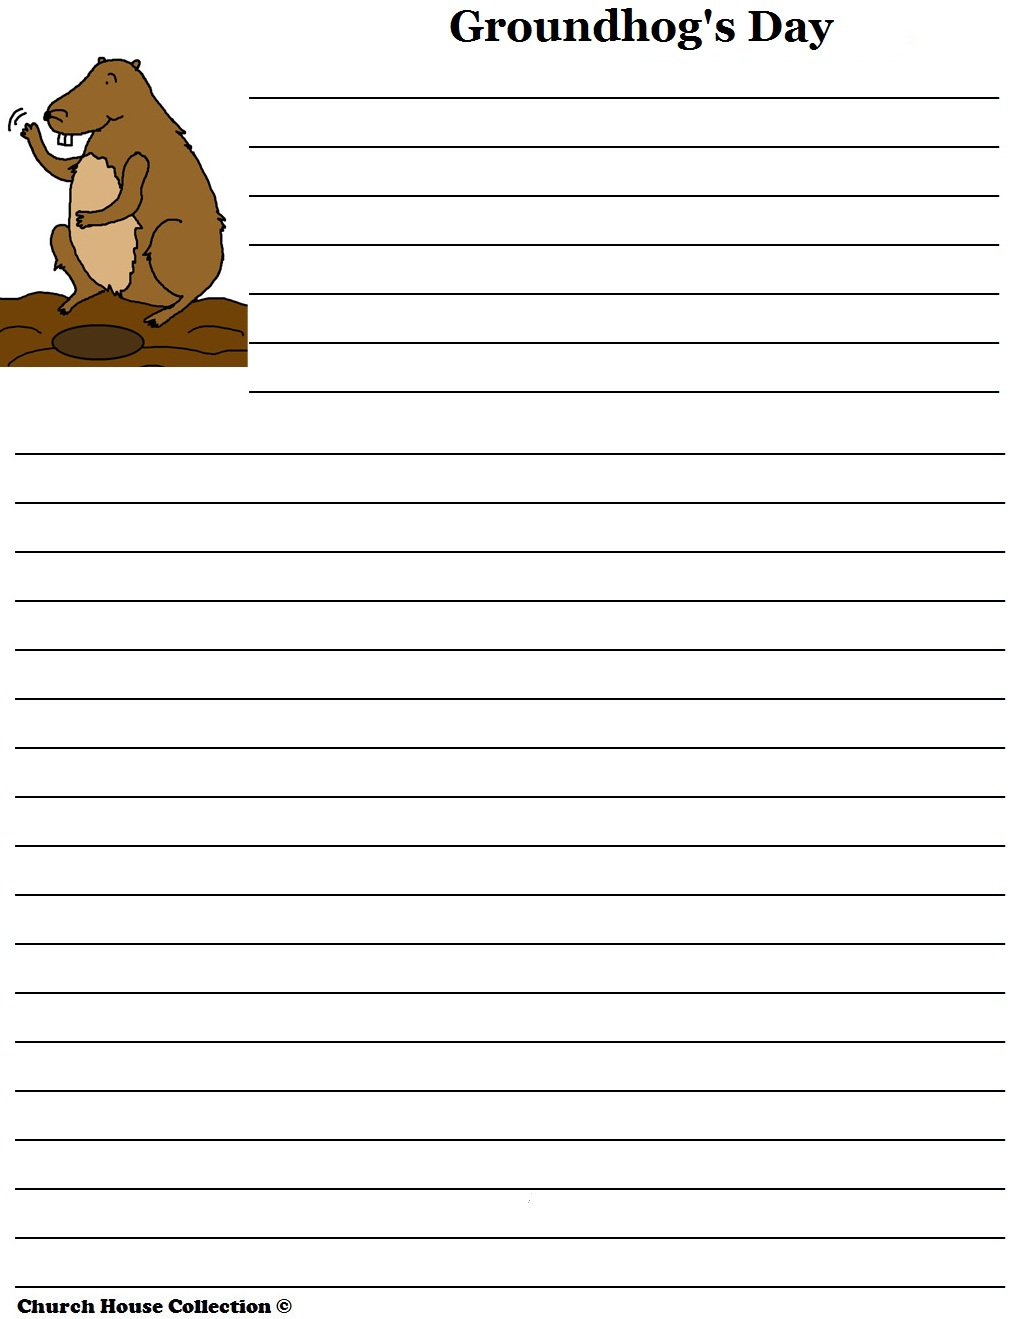 To download this freebie go to: Groundhog Day Writing Activities